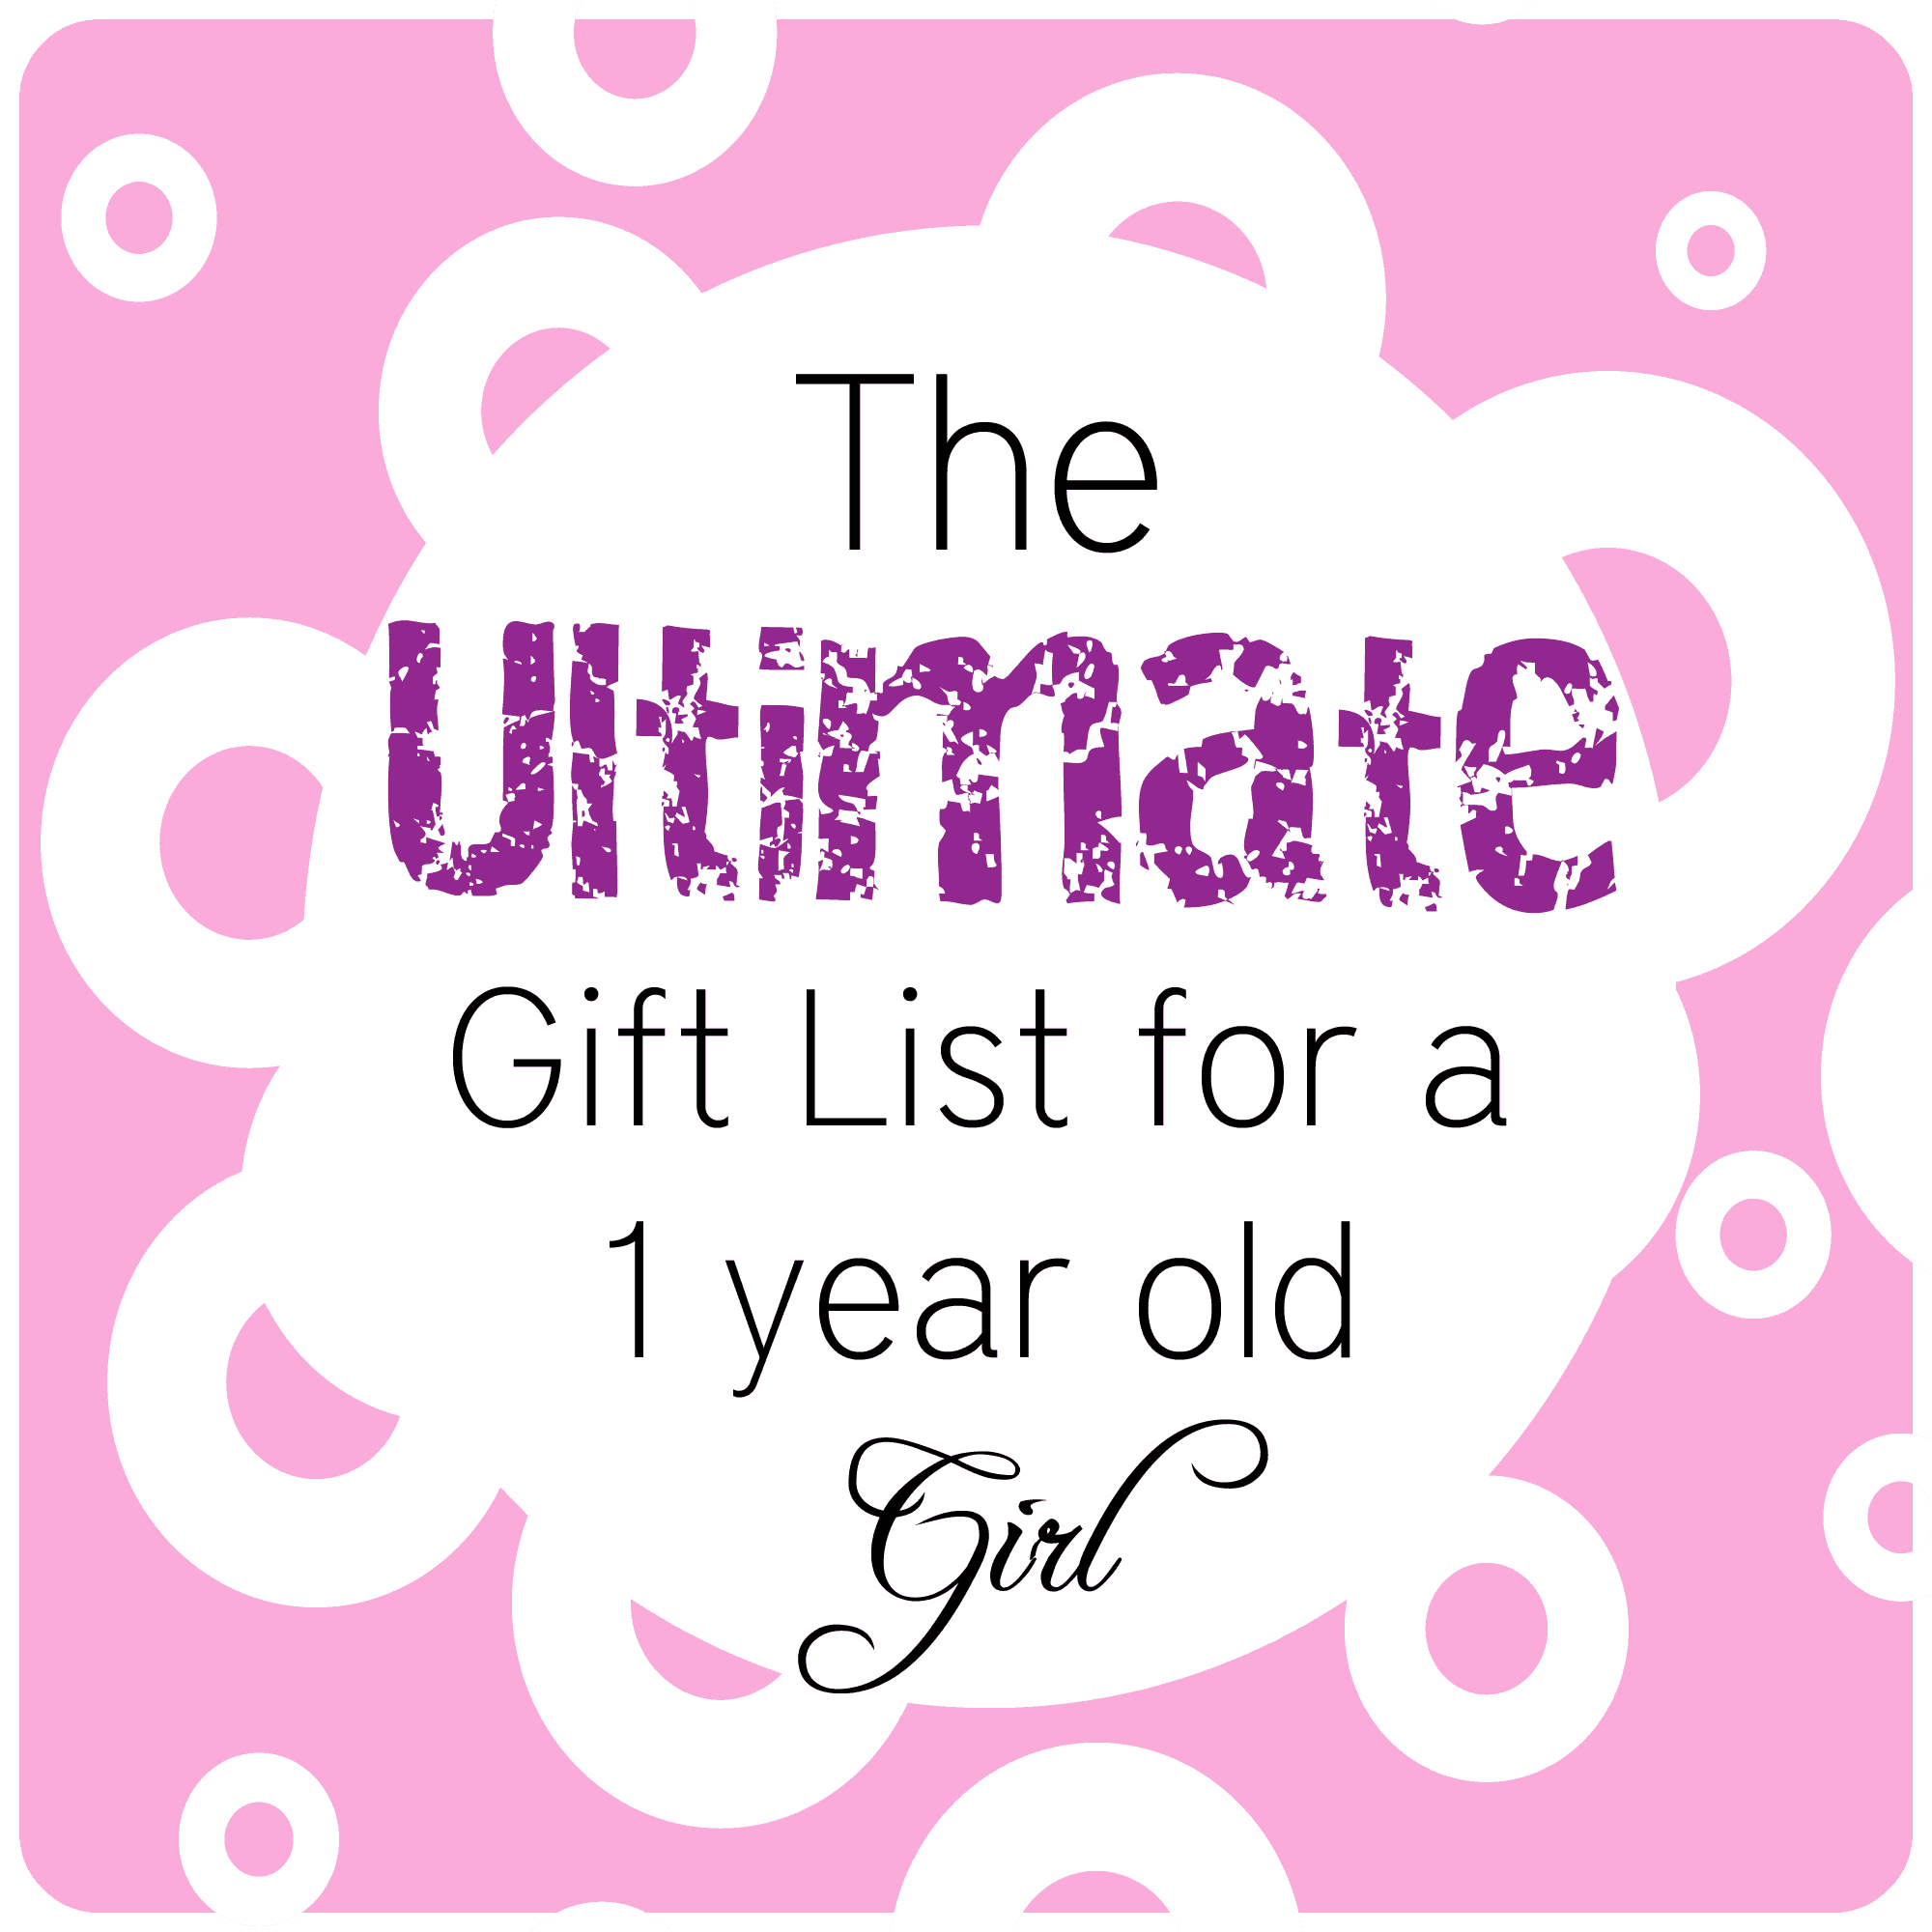 The best gift ideas for a 1 year old girl!